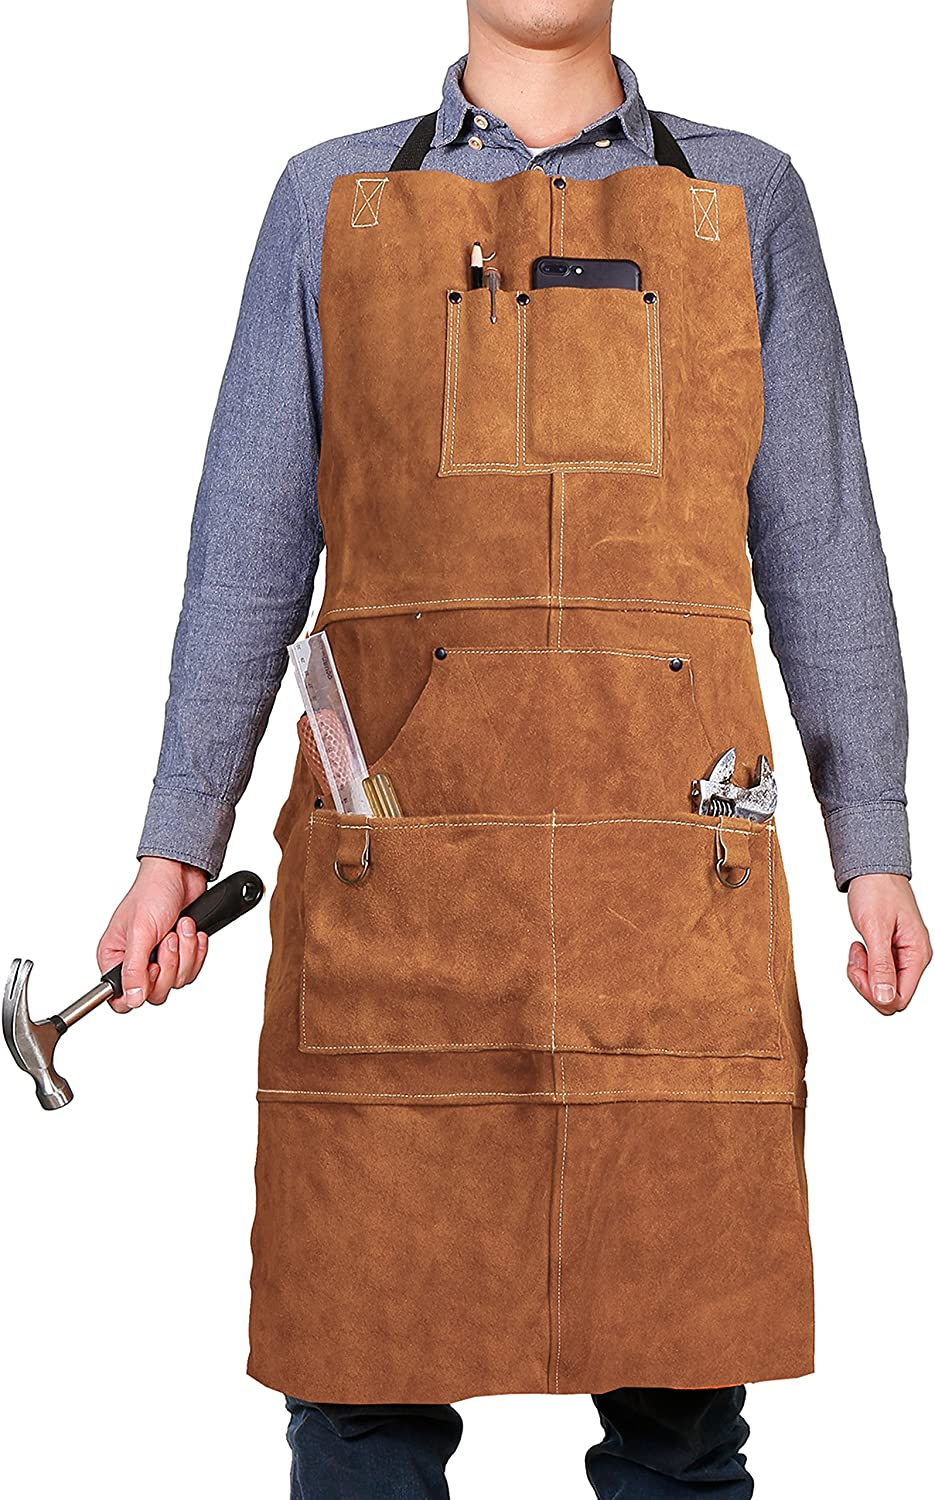 Amazon Com Leather Work Shop Apron With 6 Tool Pockets By Qeelink Heat Flame Resistant Heavy Duty Welding Apron 24 X 36 Adjustable M To Xxl For Men Women Brown